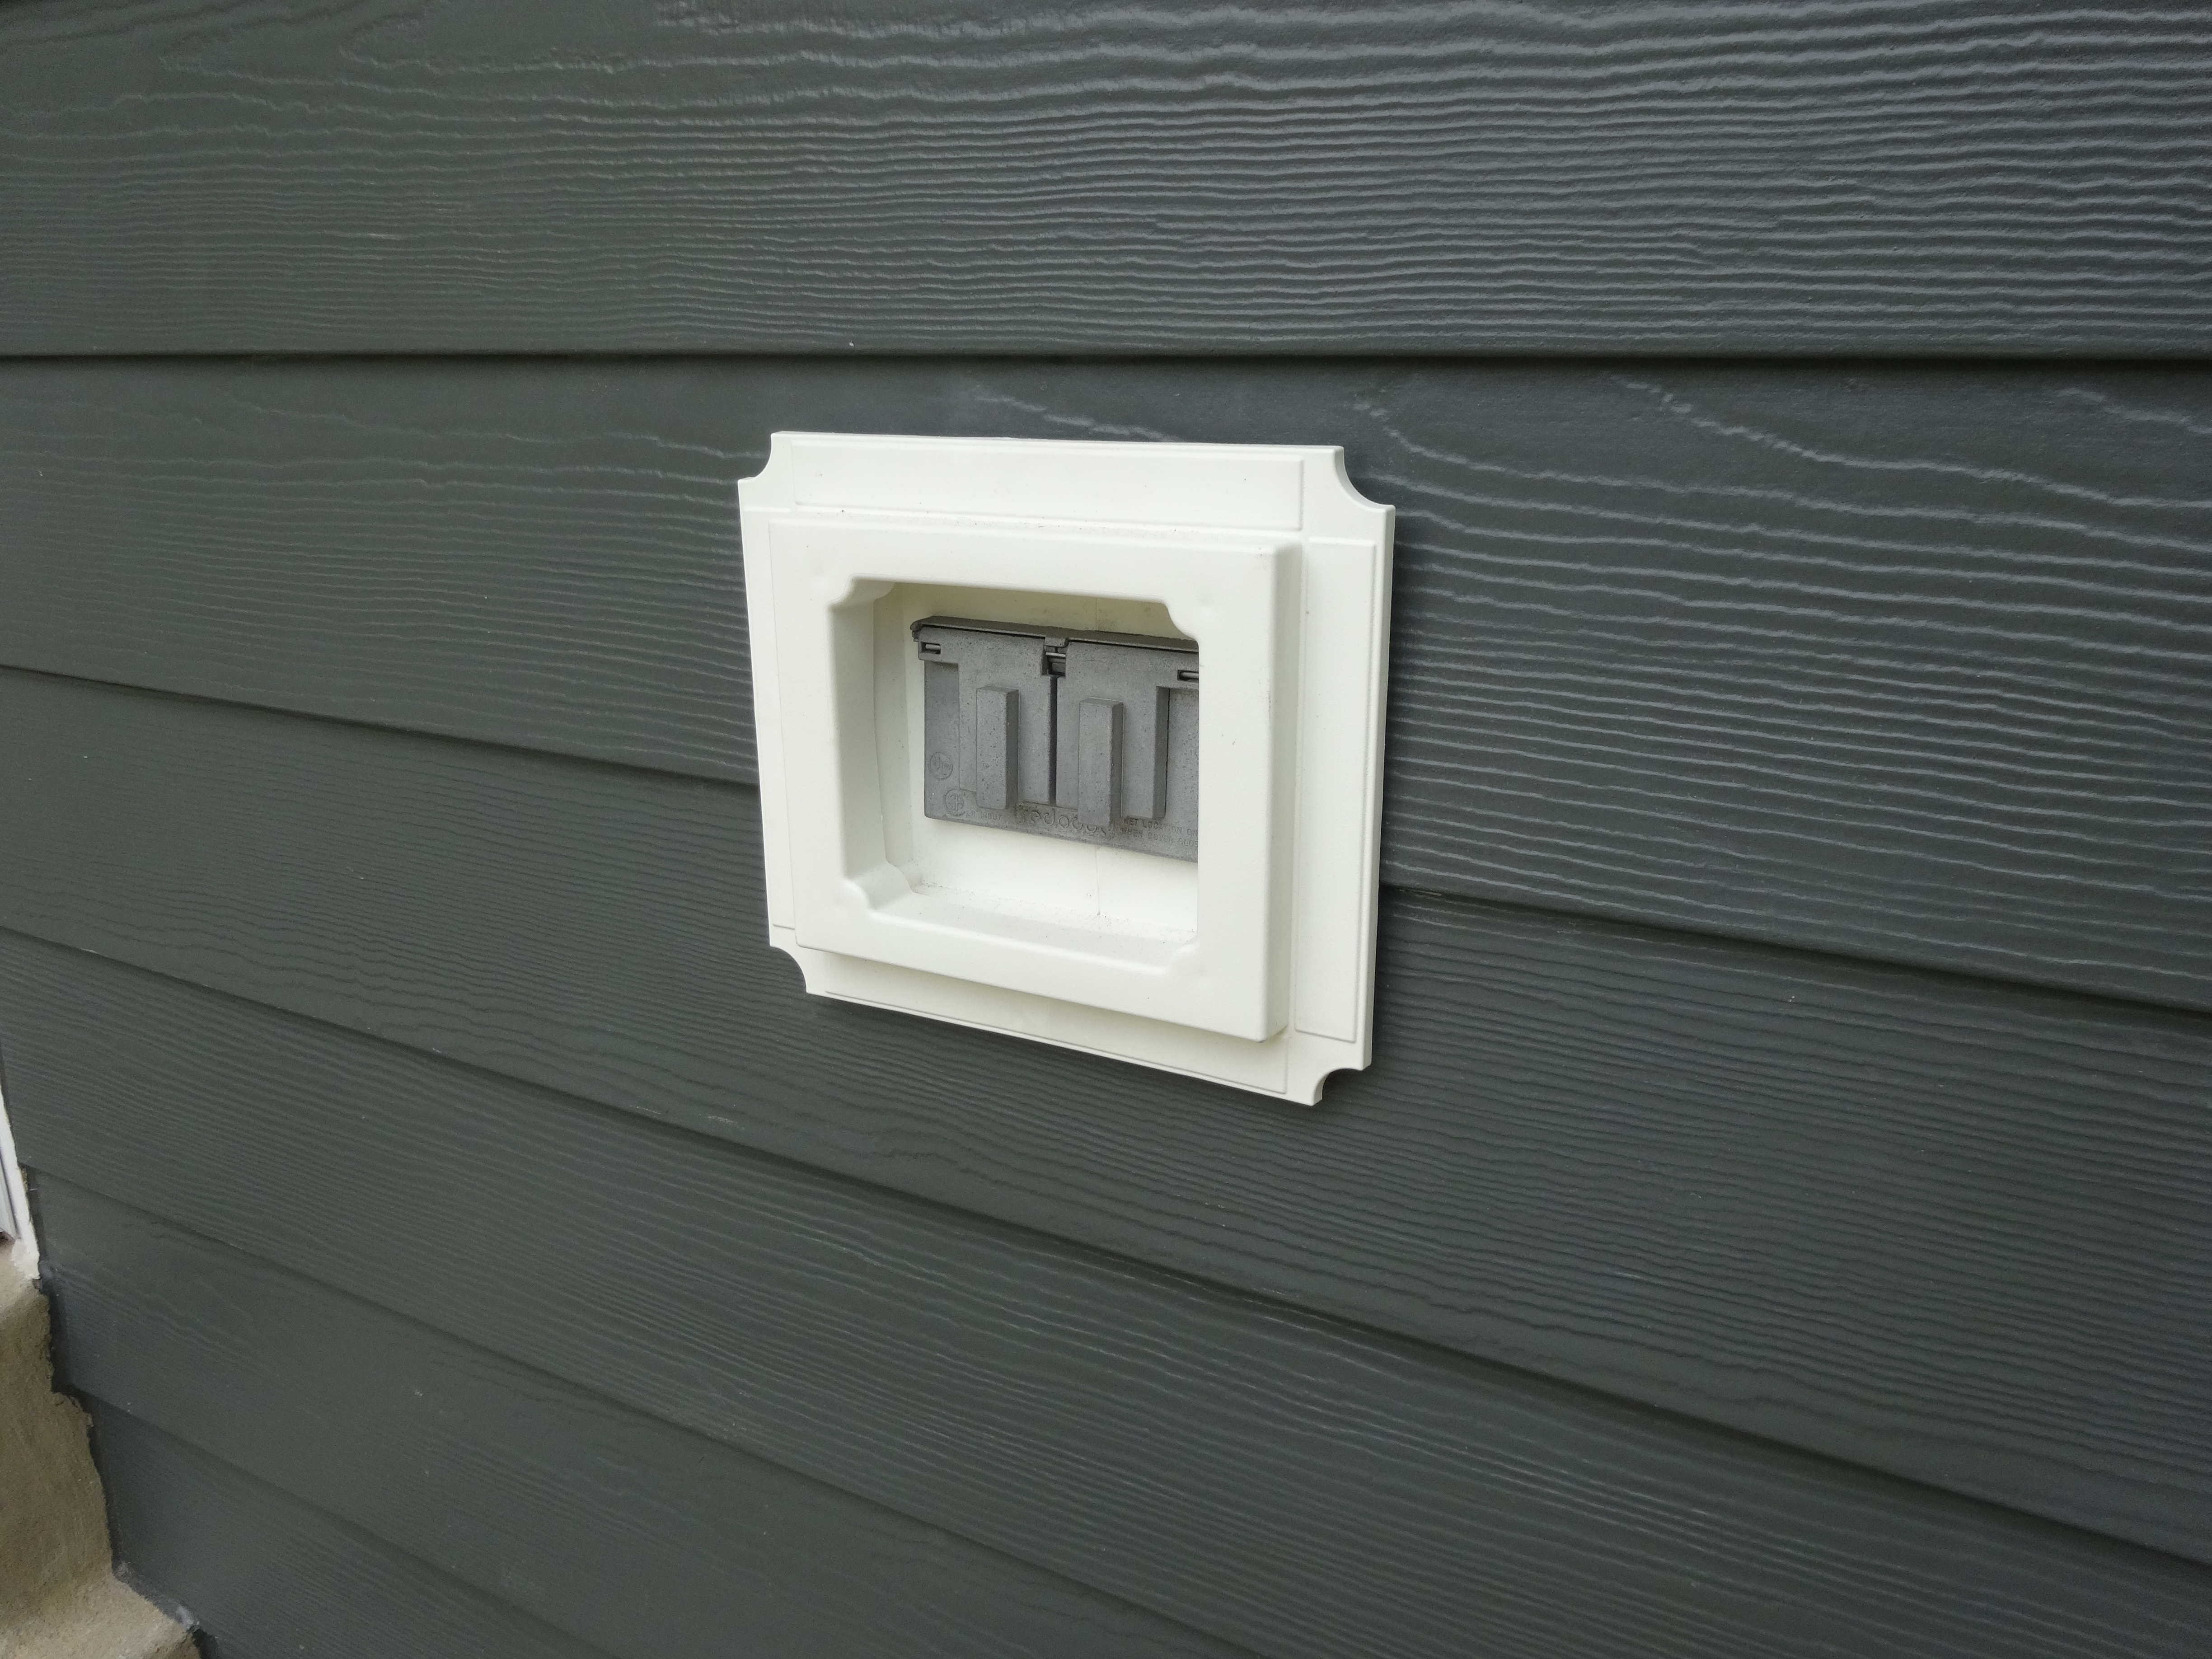 Recessed Lighting Bulb Sticks Out : Siding accessories sunshine contracting